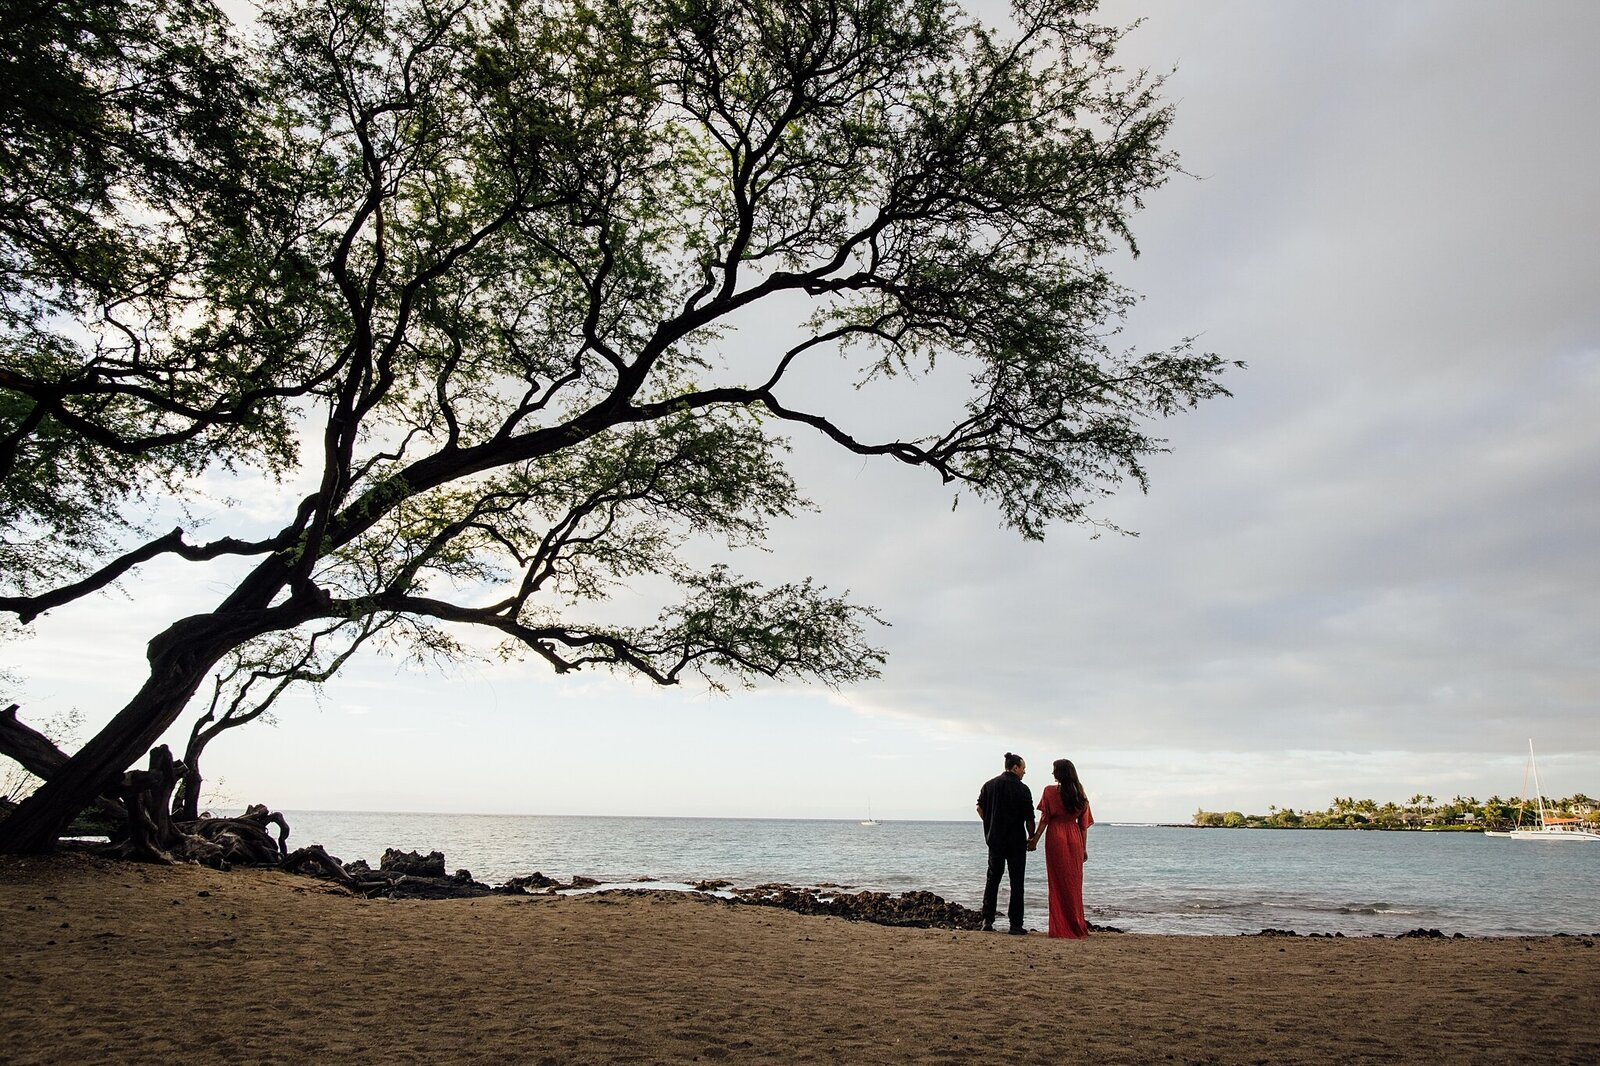 kona-hawaii-engagement-photographer-8